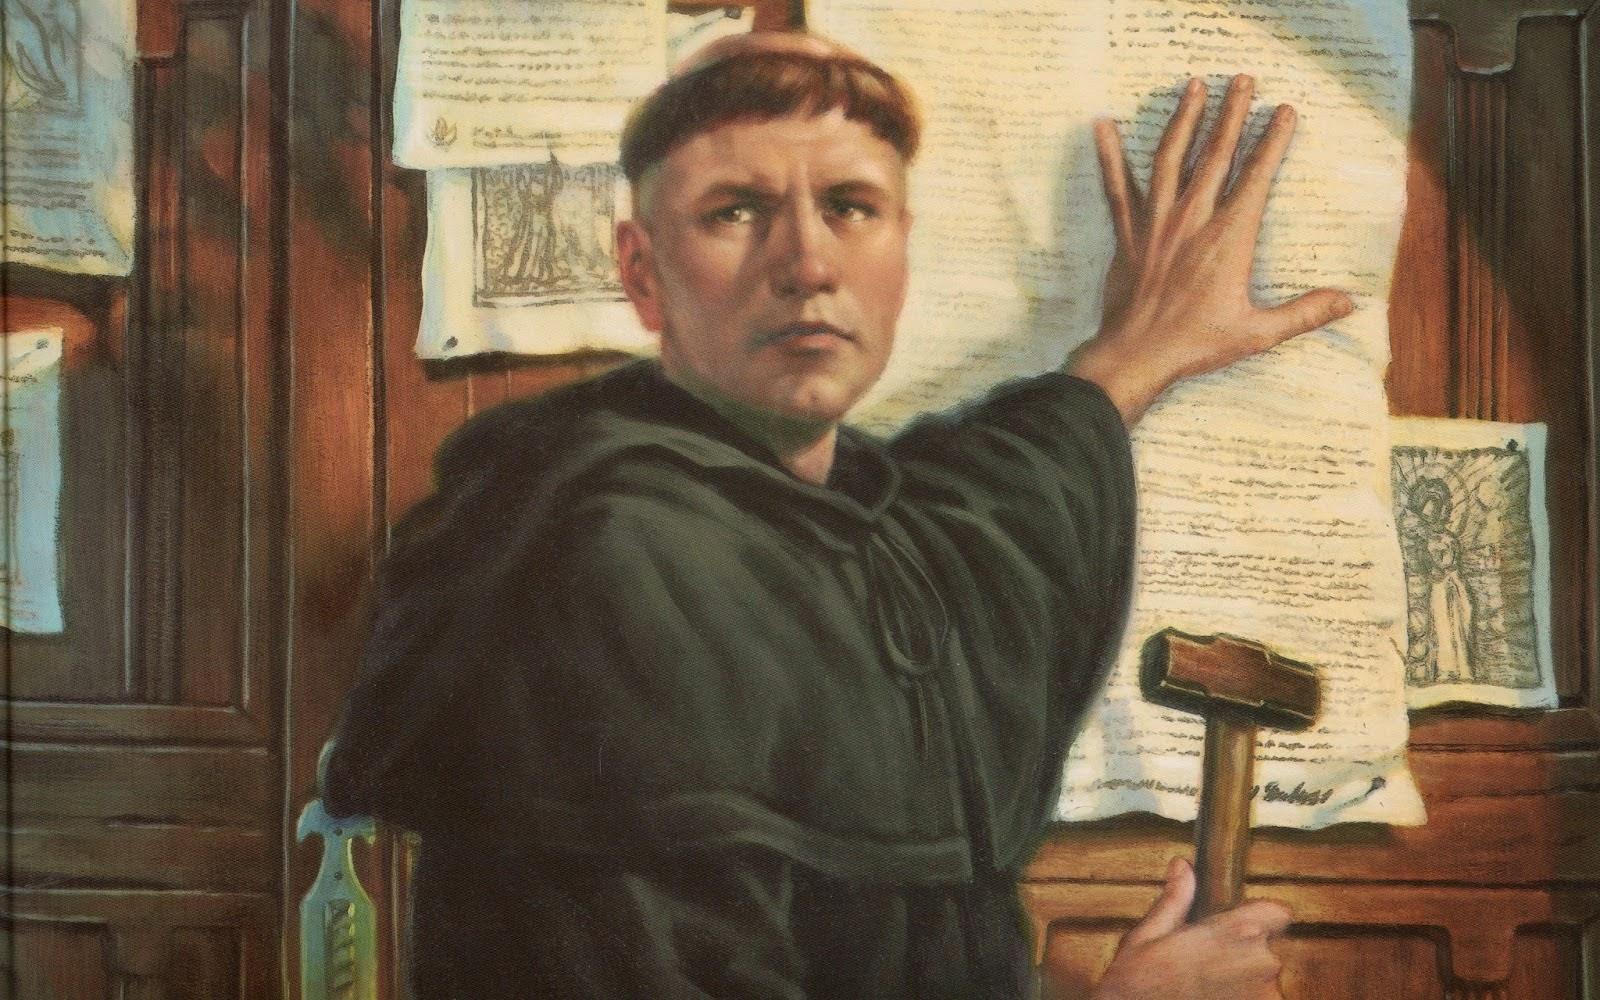 the reformation martin luther and the Although these ideas had been advanced before, martin luther codified them at  a moment in history ripe for religious reformation the catholic church was ever .